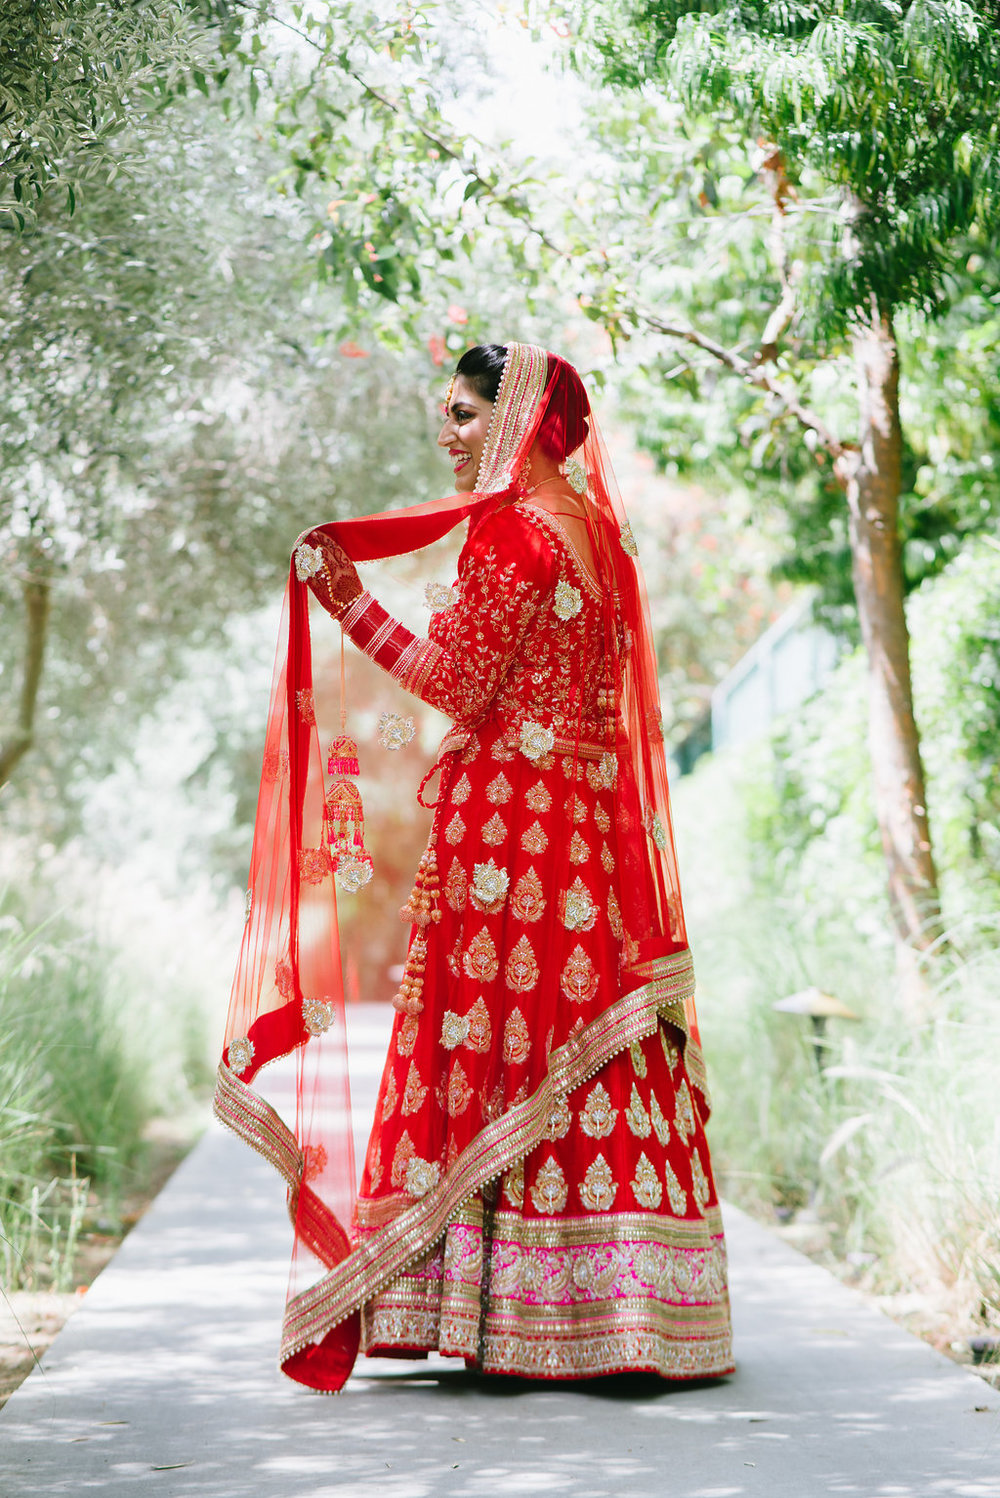 aman+sonu_wedding-235.jpg